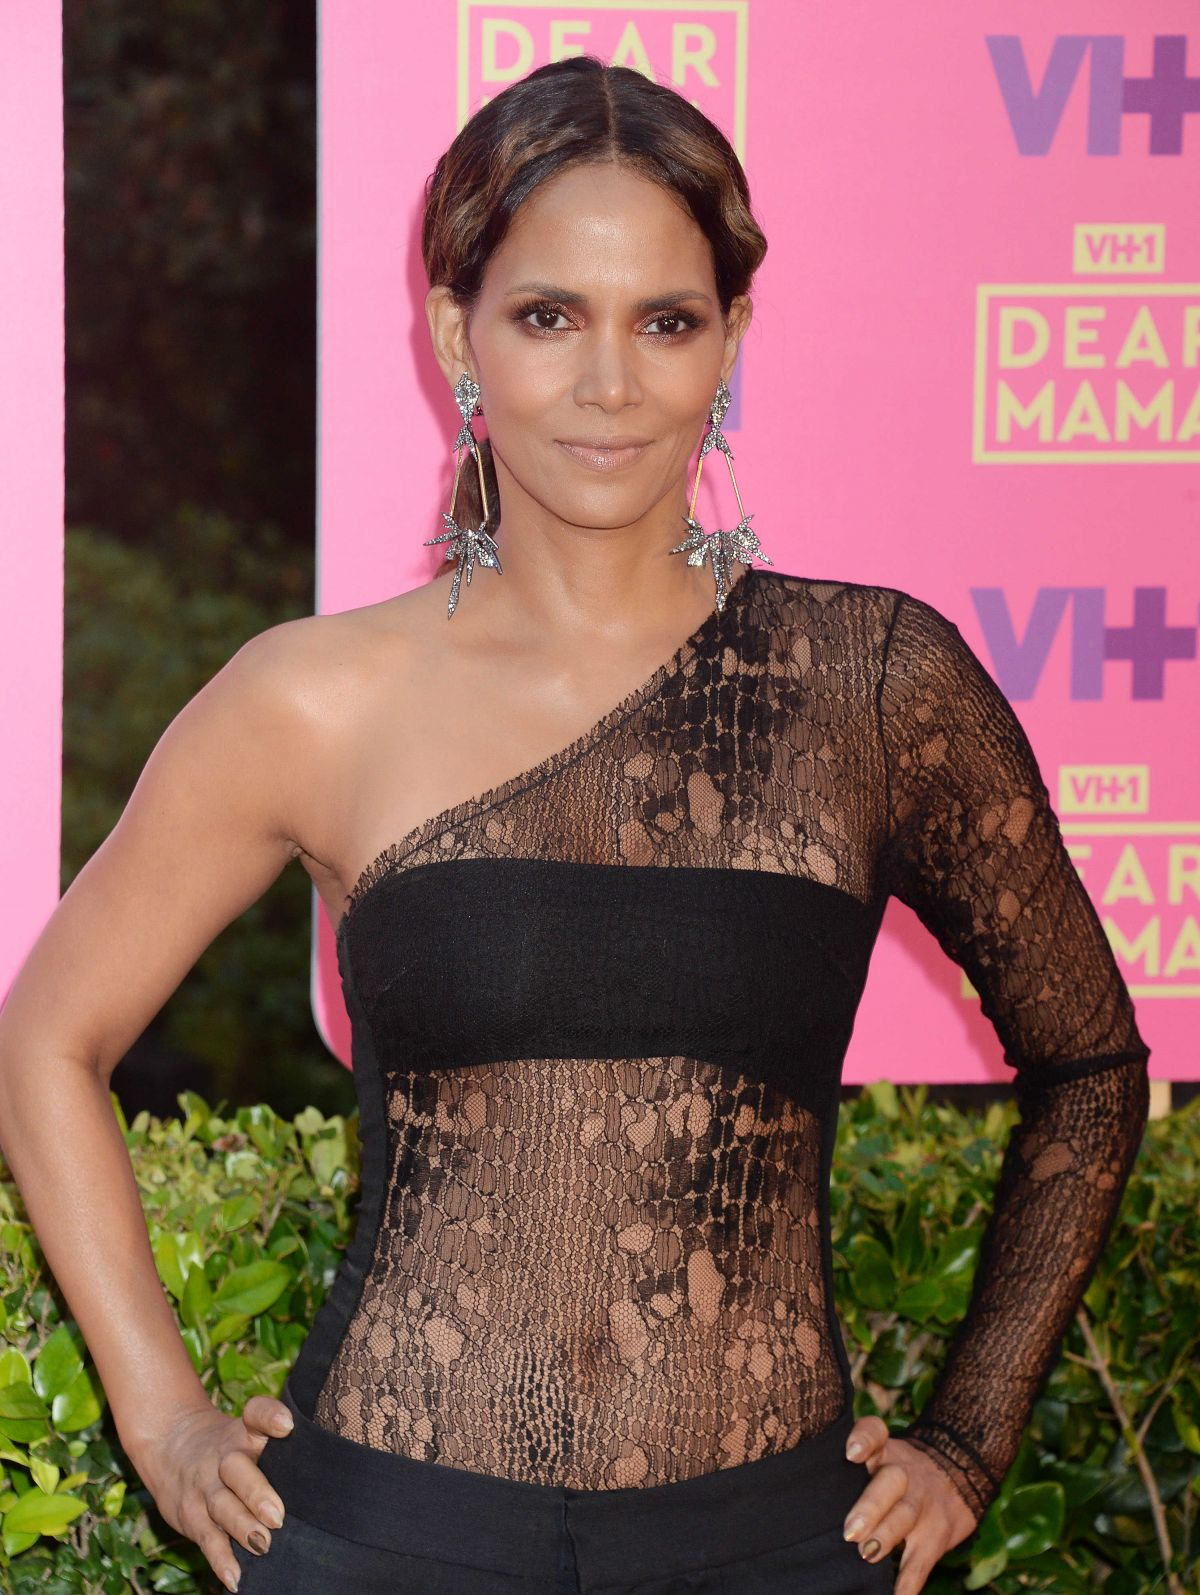 HALLE BERRY at VH1 Dear Mama Taping in Los Angeles 05/06/2017